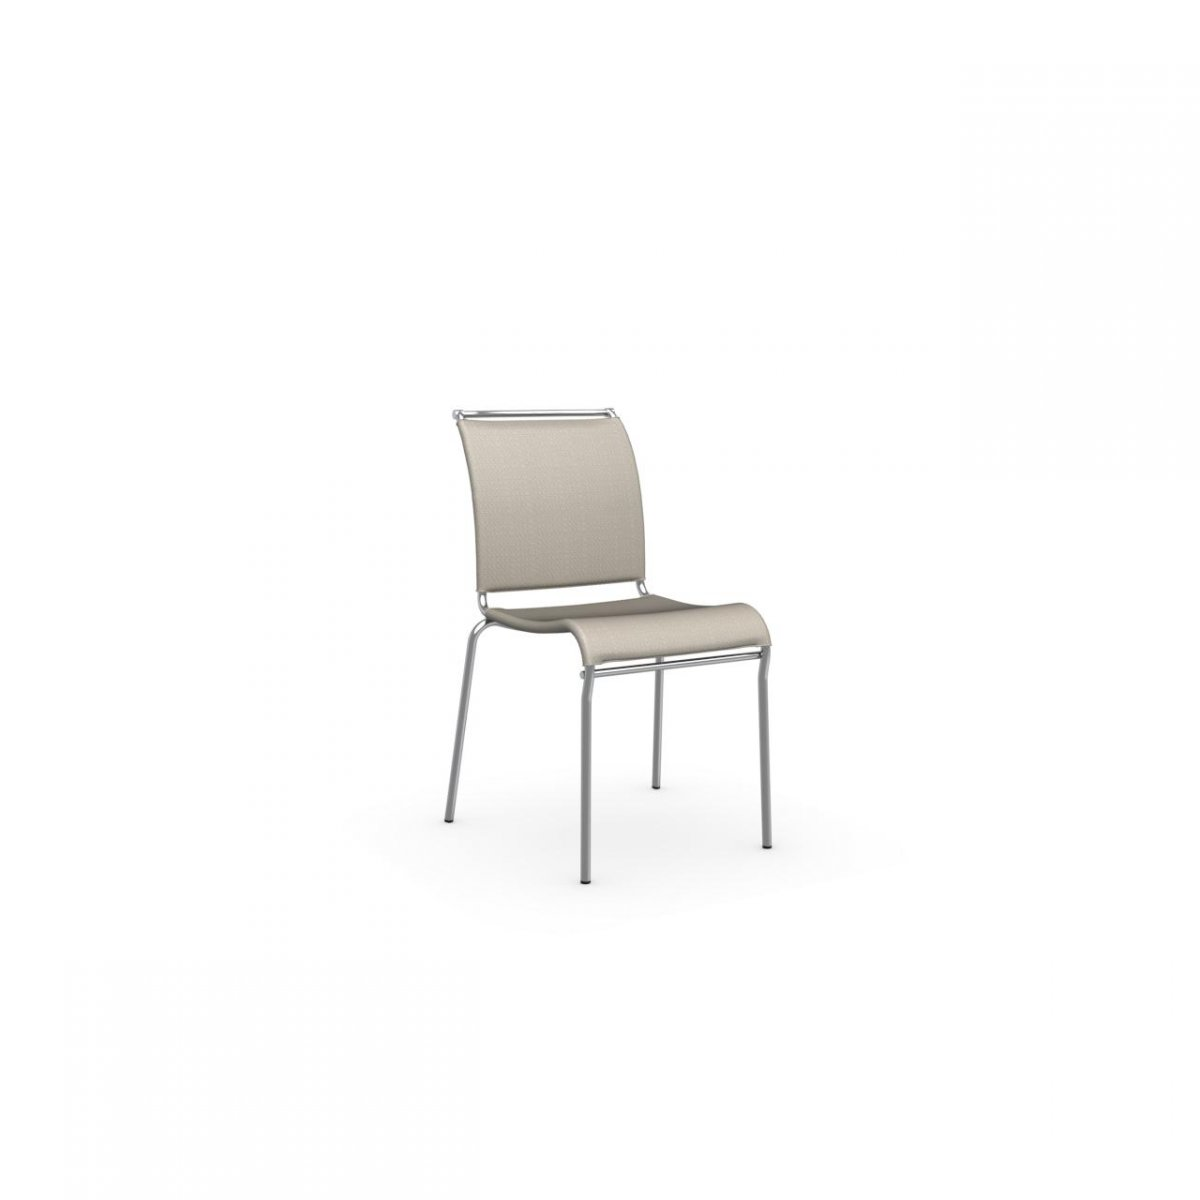 Connubia by Calligaris: SEDIA AIR CB93 Connubia by Calligaris ...